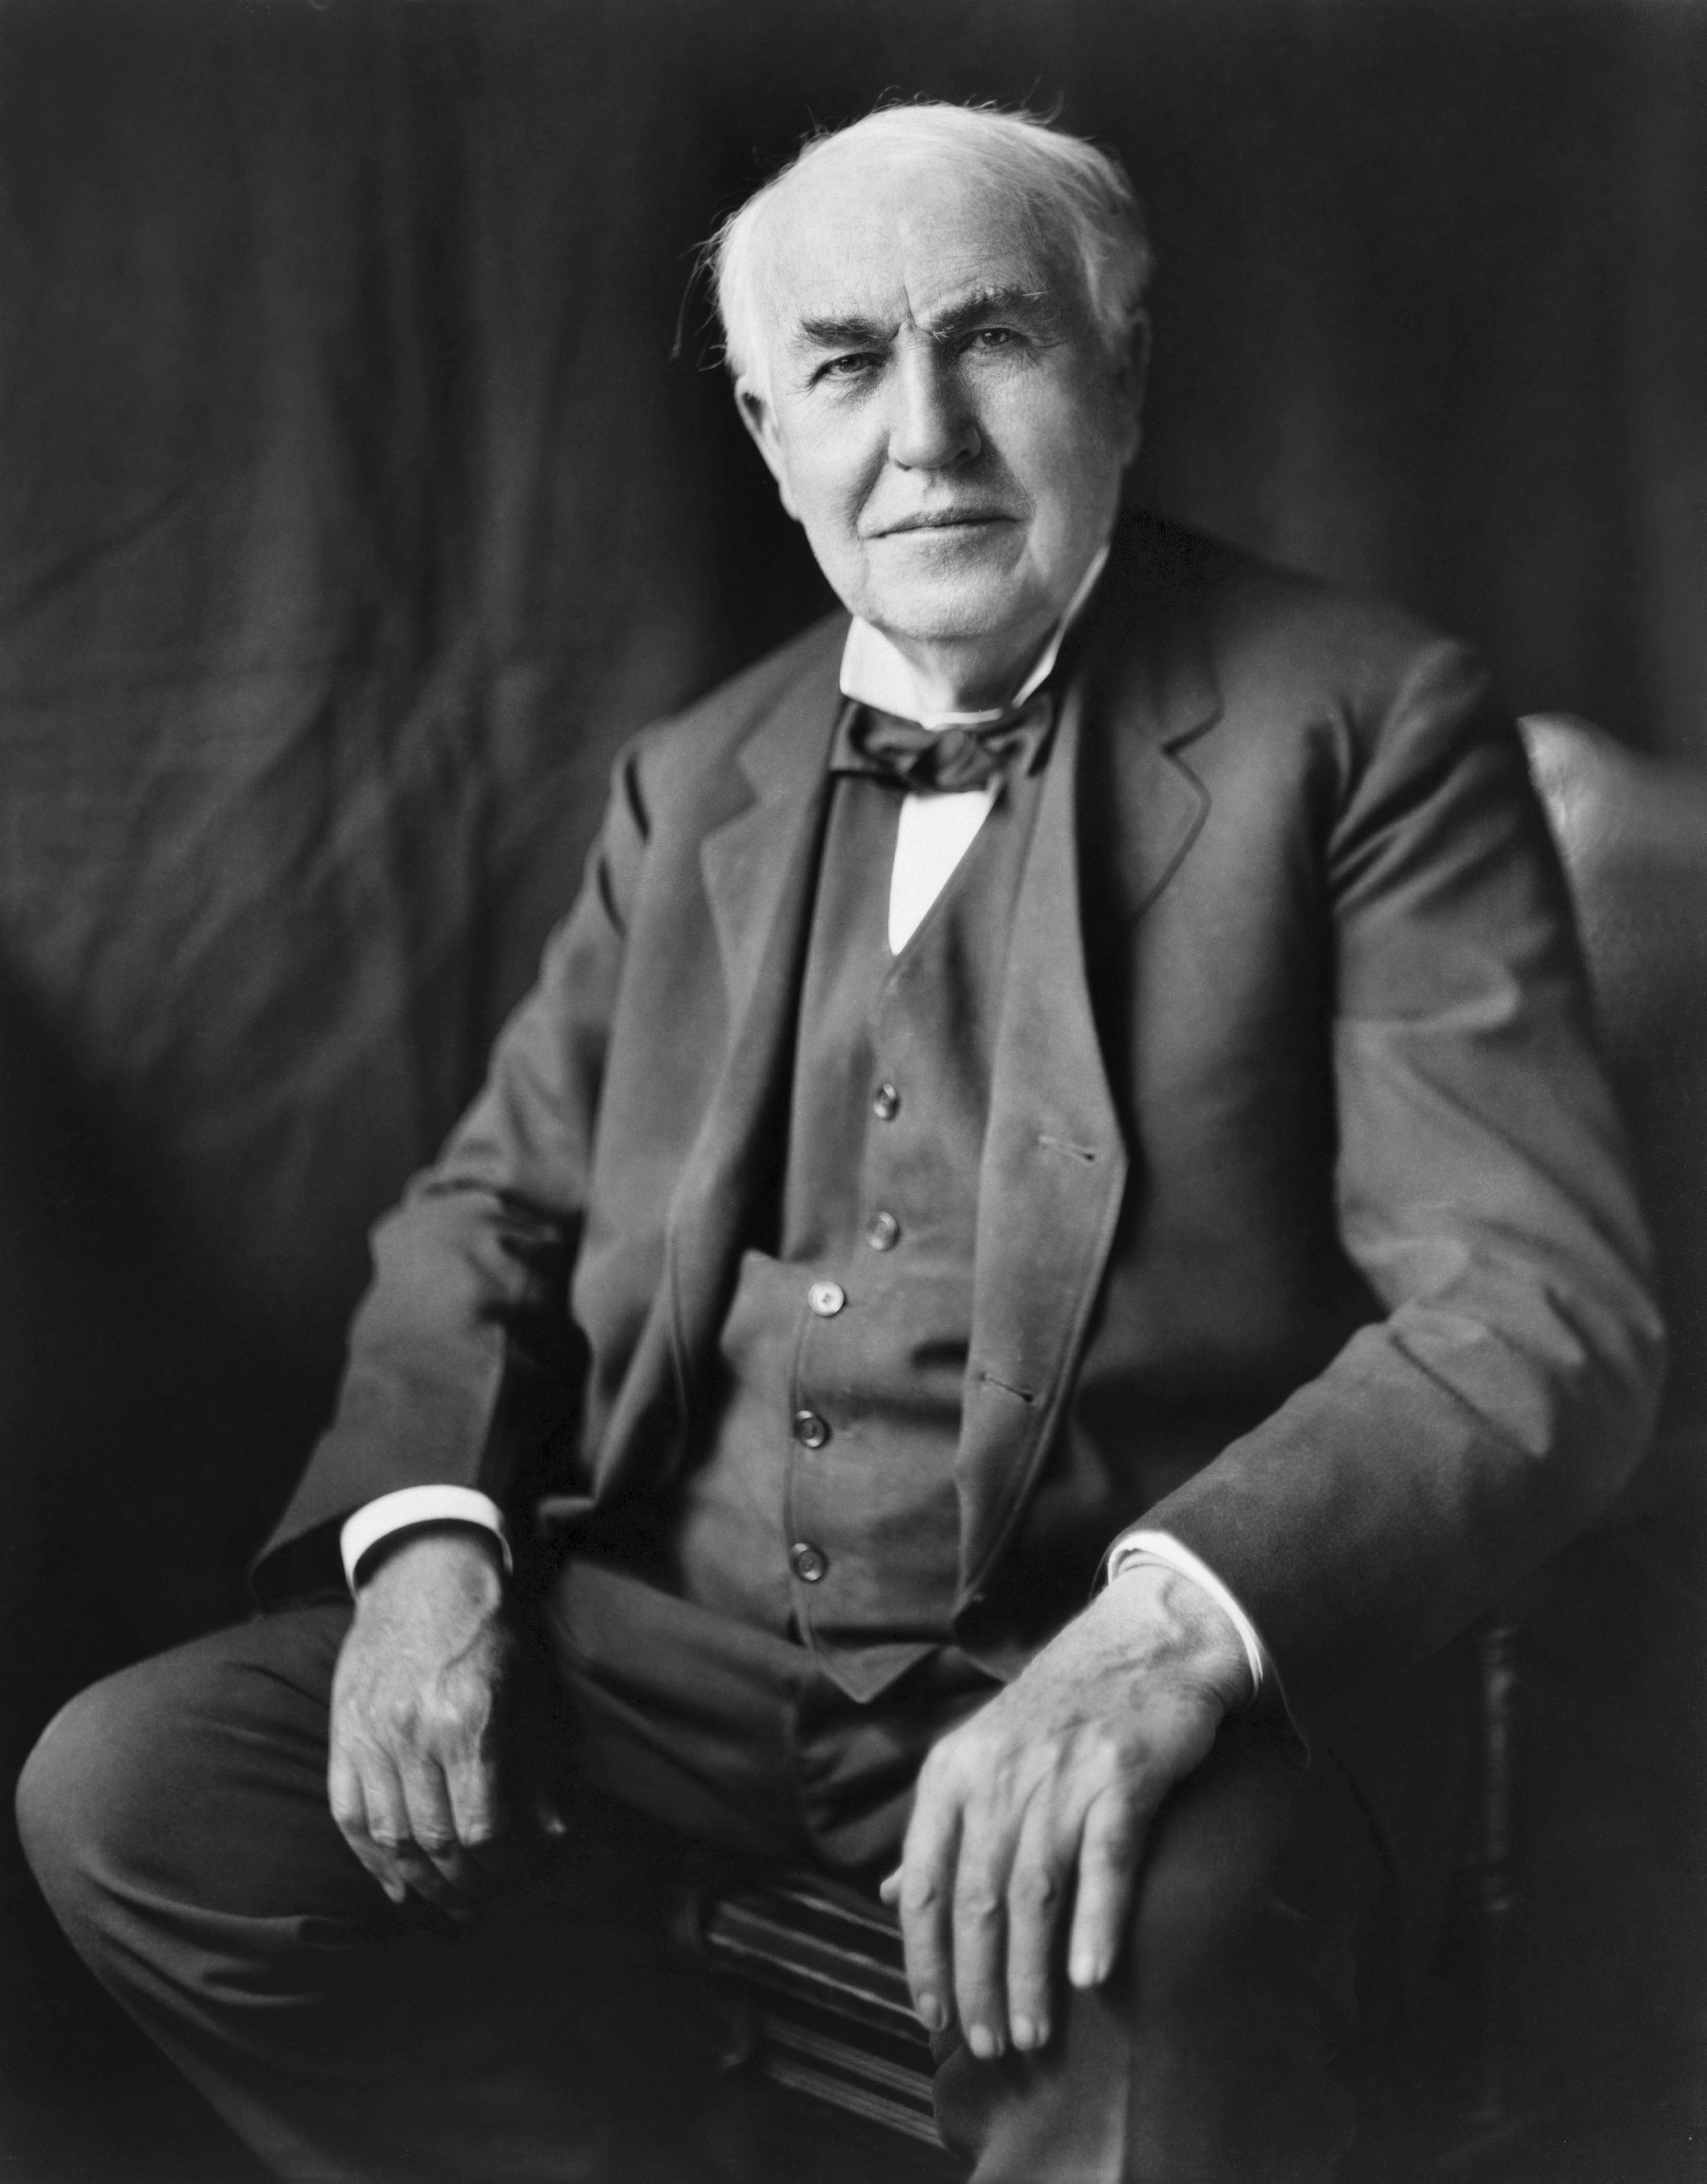 Thomas Edison - Edison patented 1,093 inventions in his lifetime ...:... inventions in his lifetime, earning him the nickname